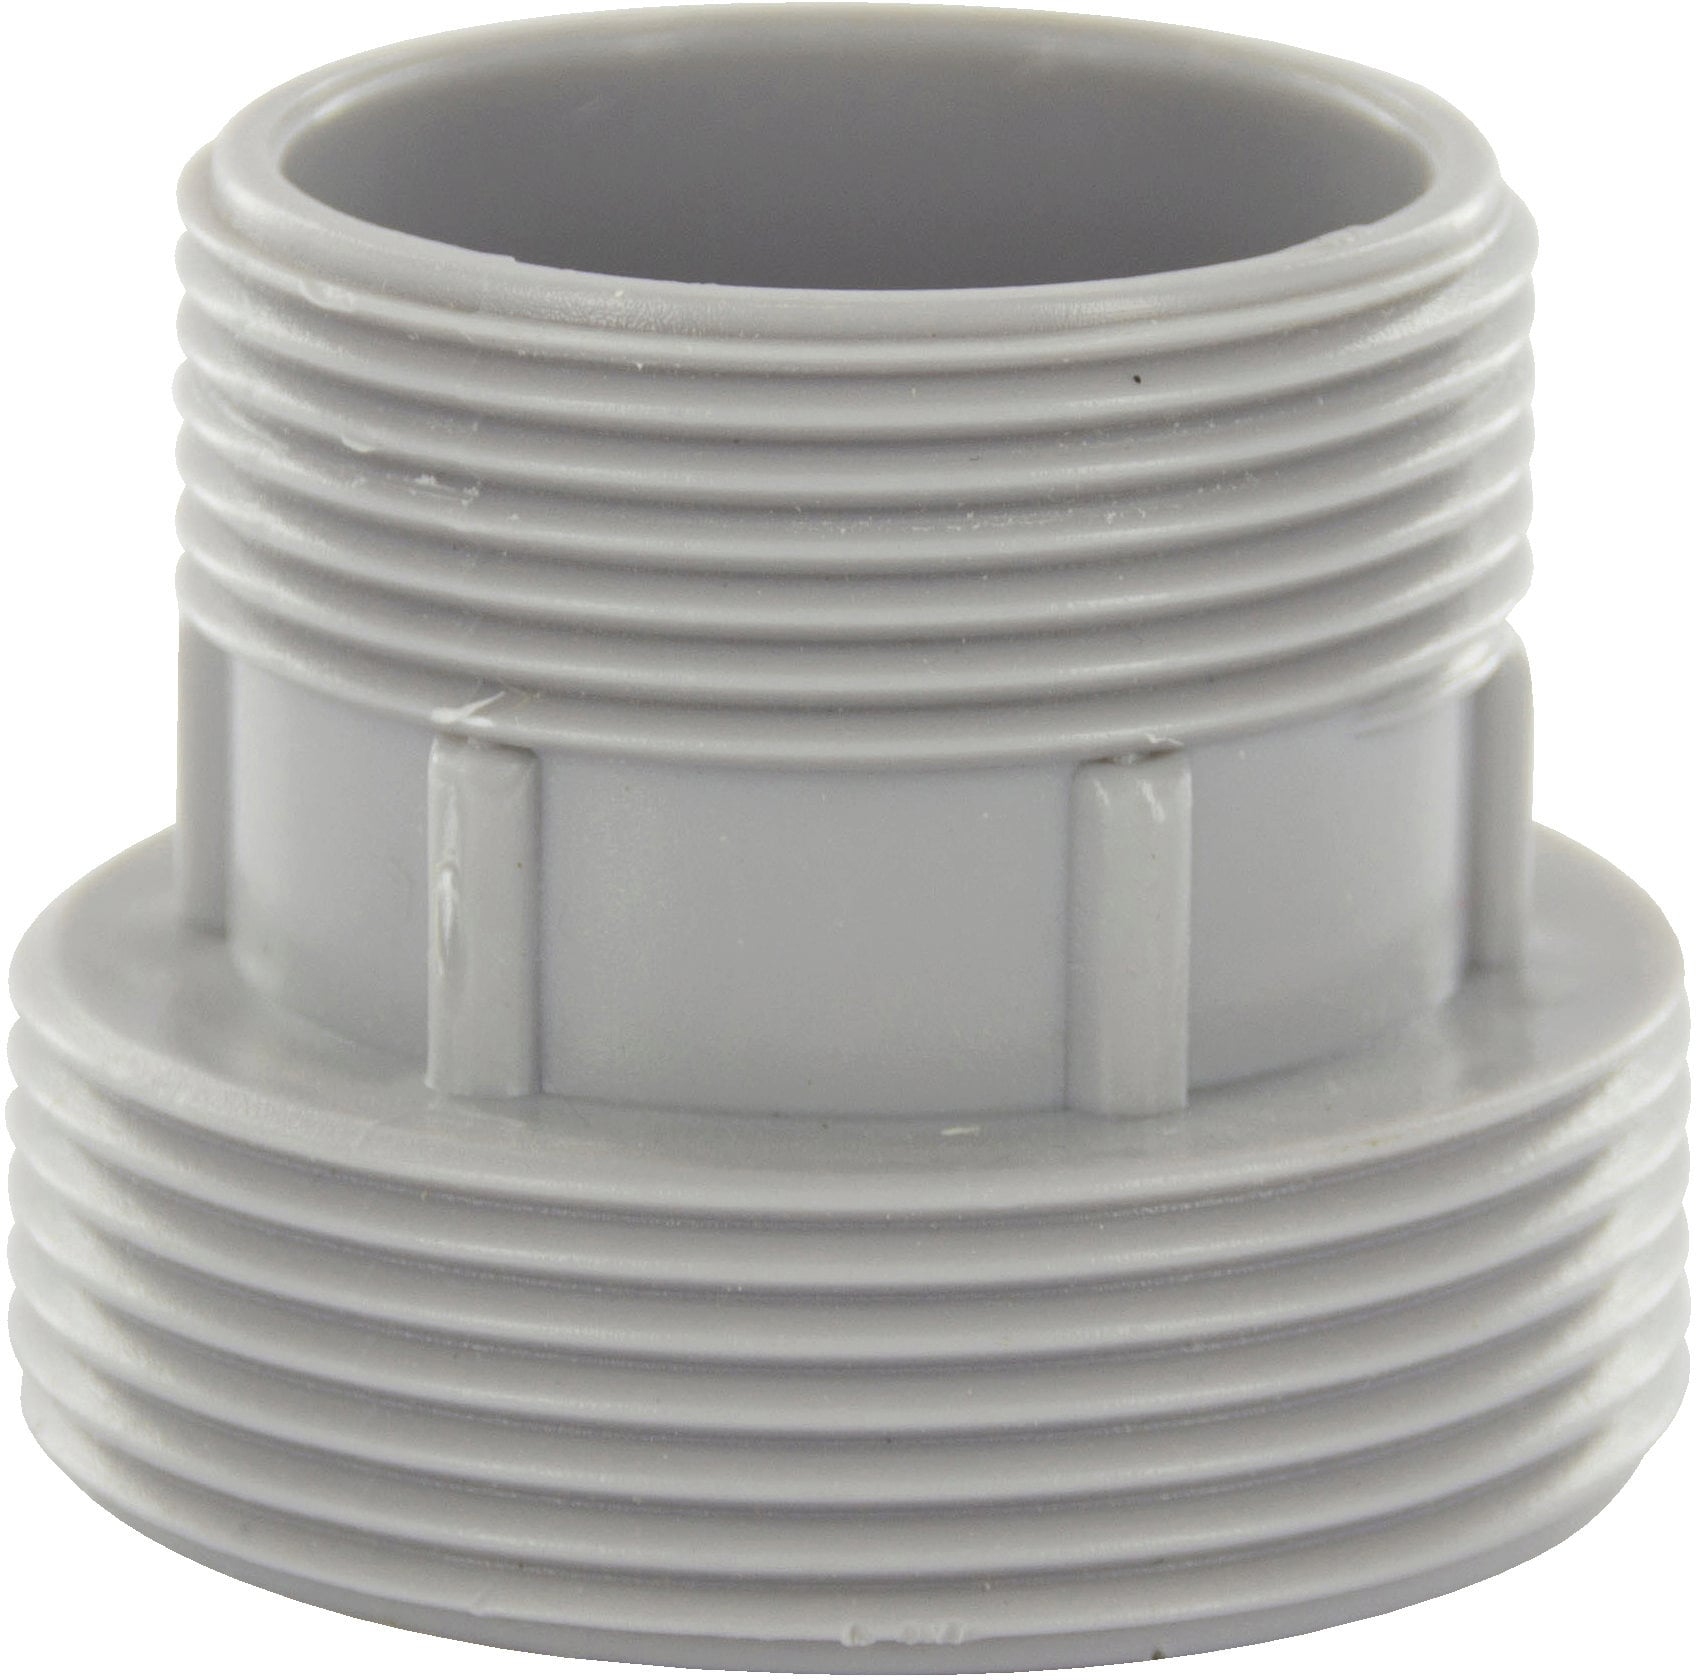 Pool Bodensauger Adapter 040933 Adapter Für Intex Pools 2